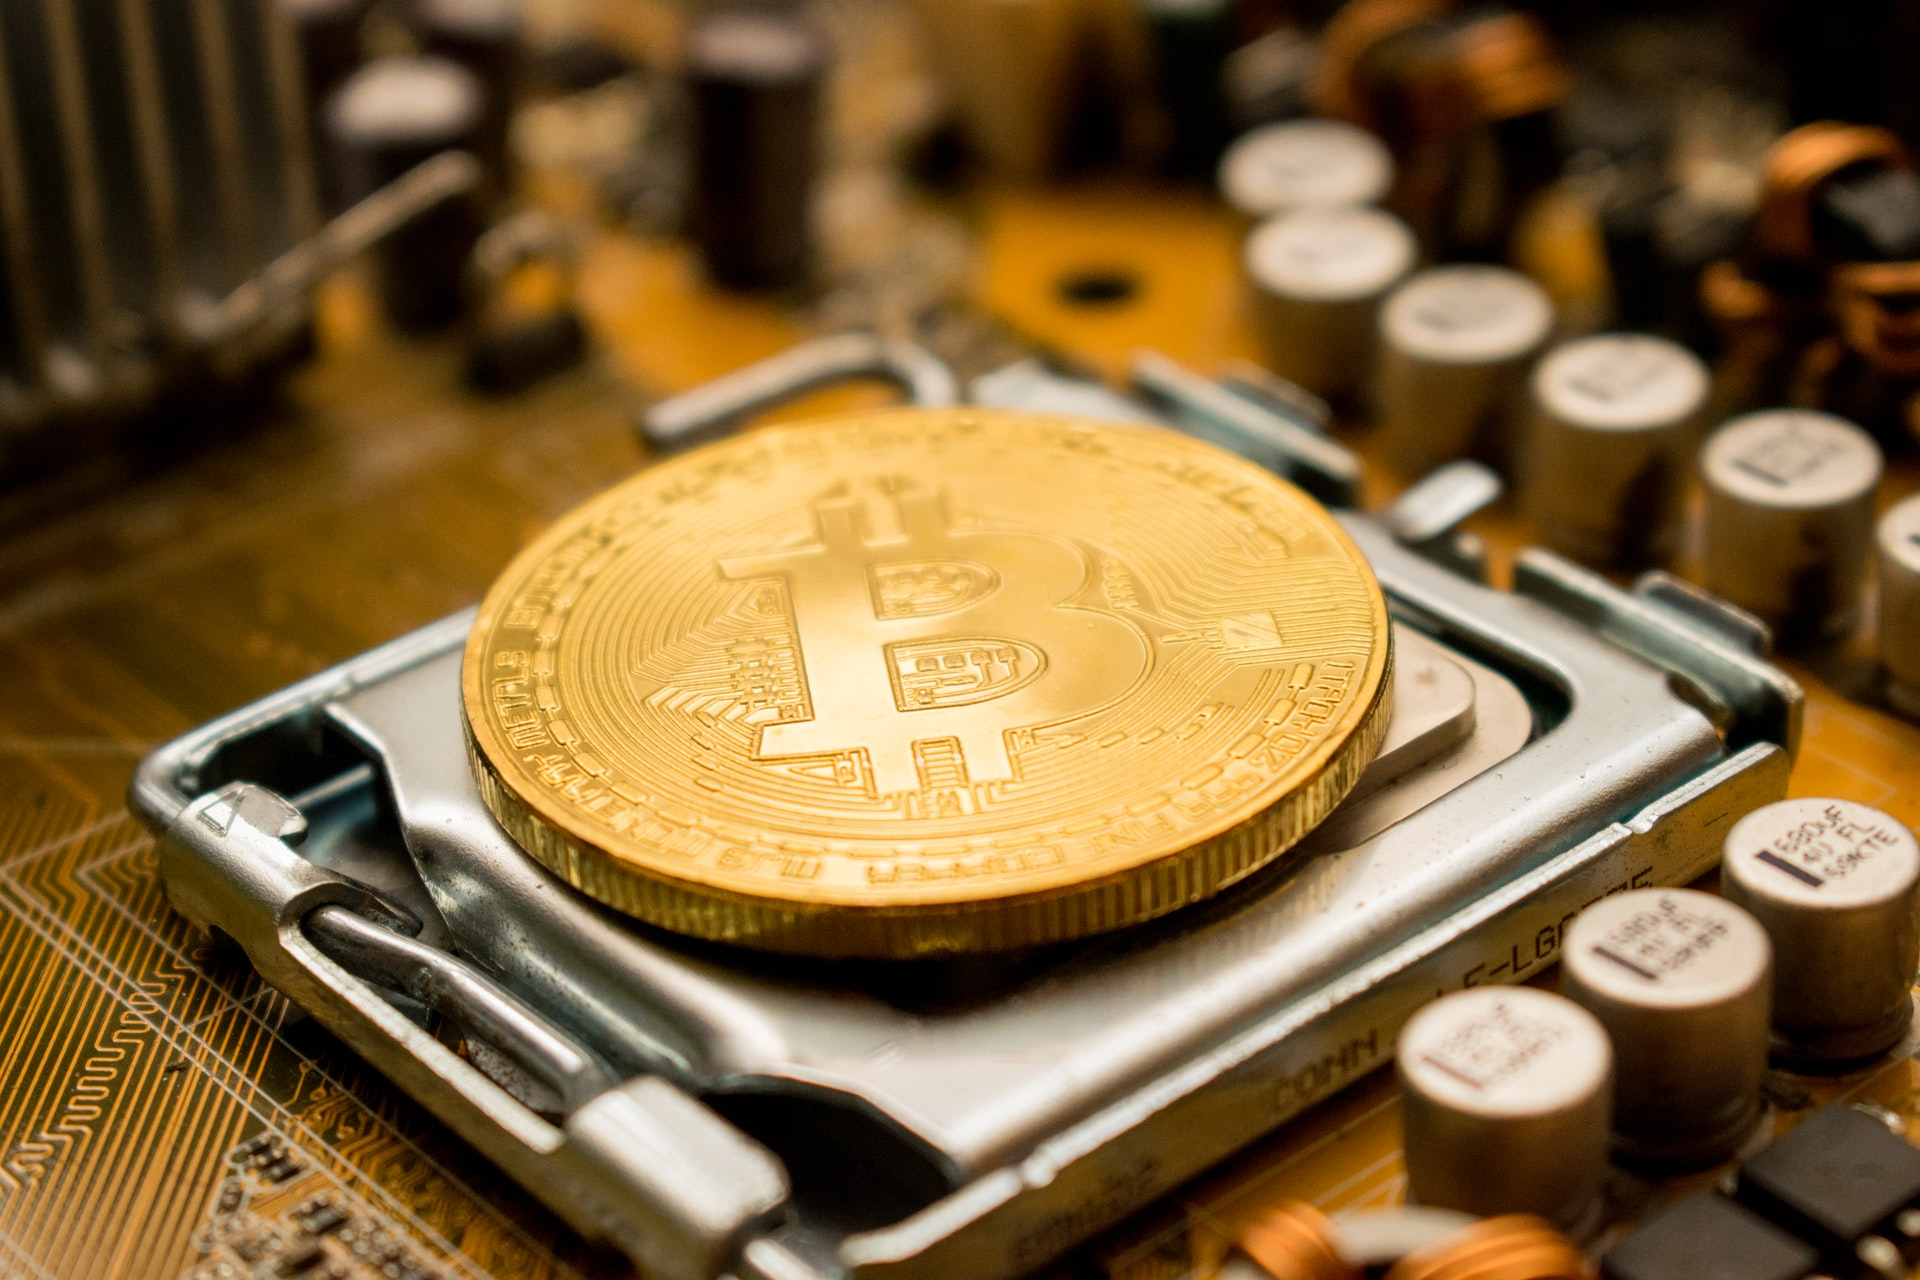 Bitcoin Breakout Overshadows Gold as Institutions Buy in Big on Crypto